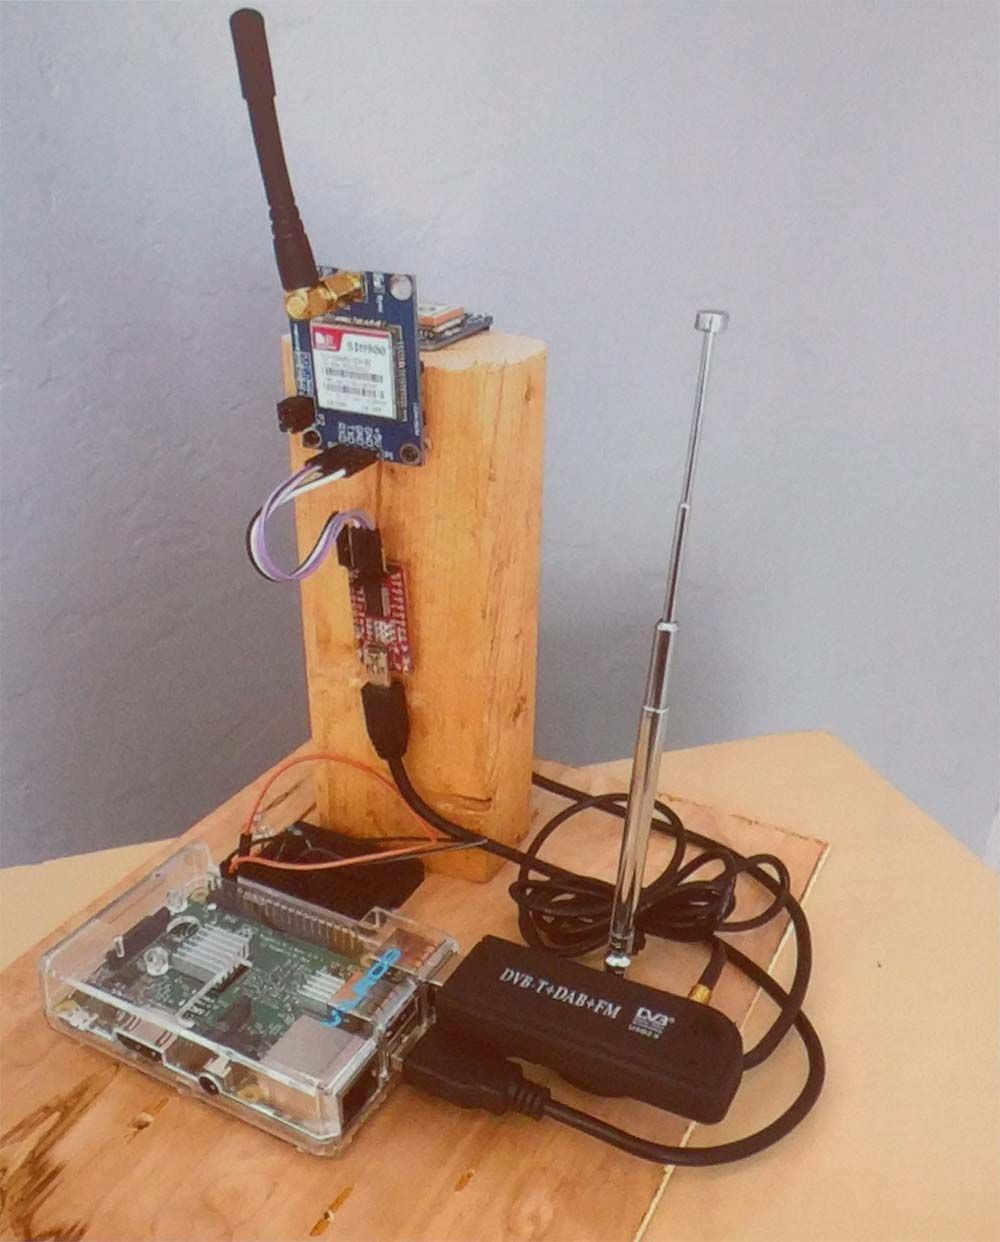 How To Detect And Find Rogue Cell Towers Raspberry Pi